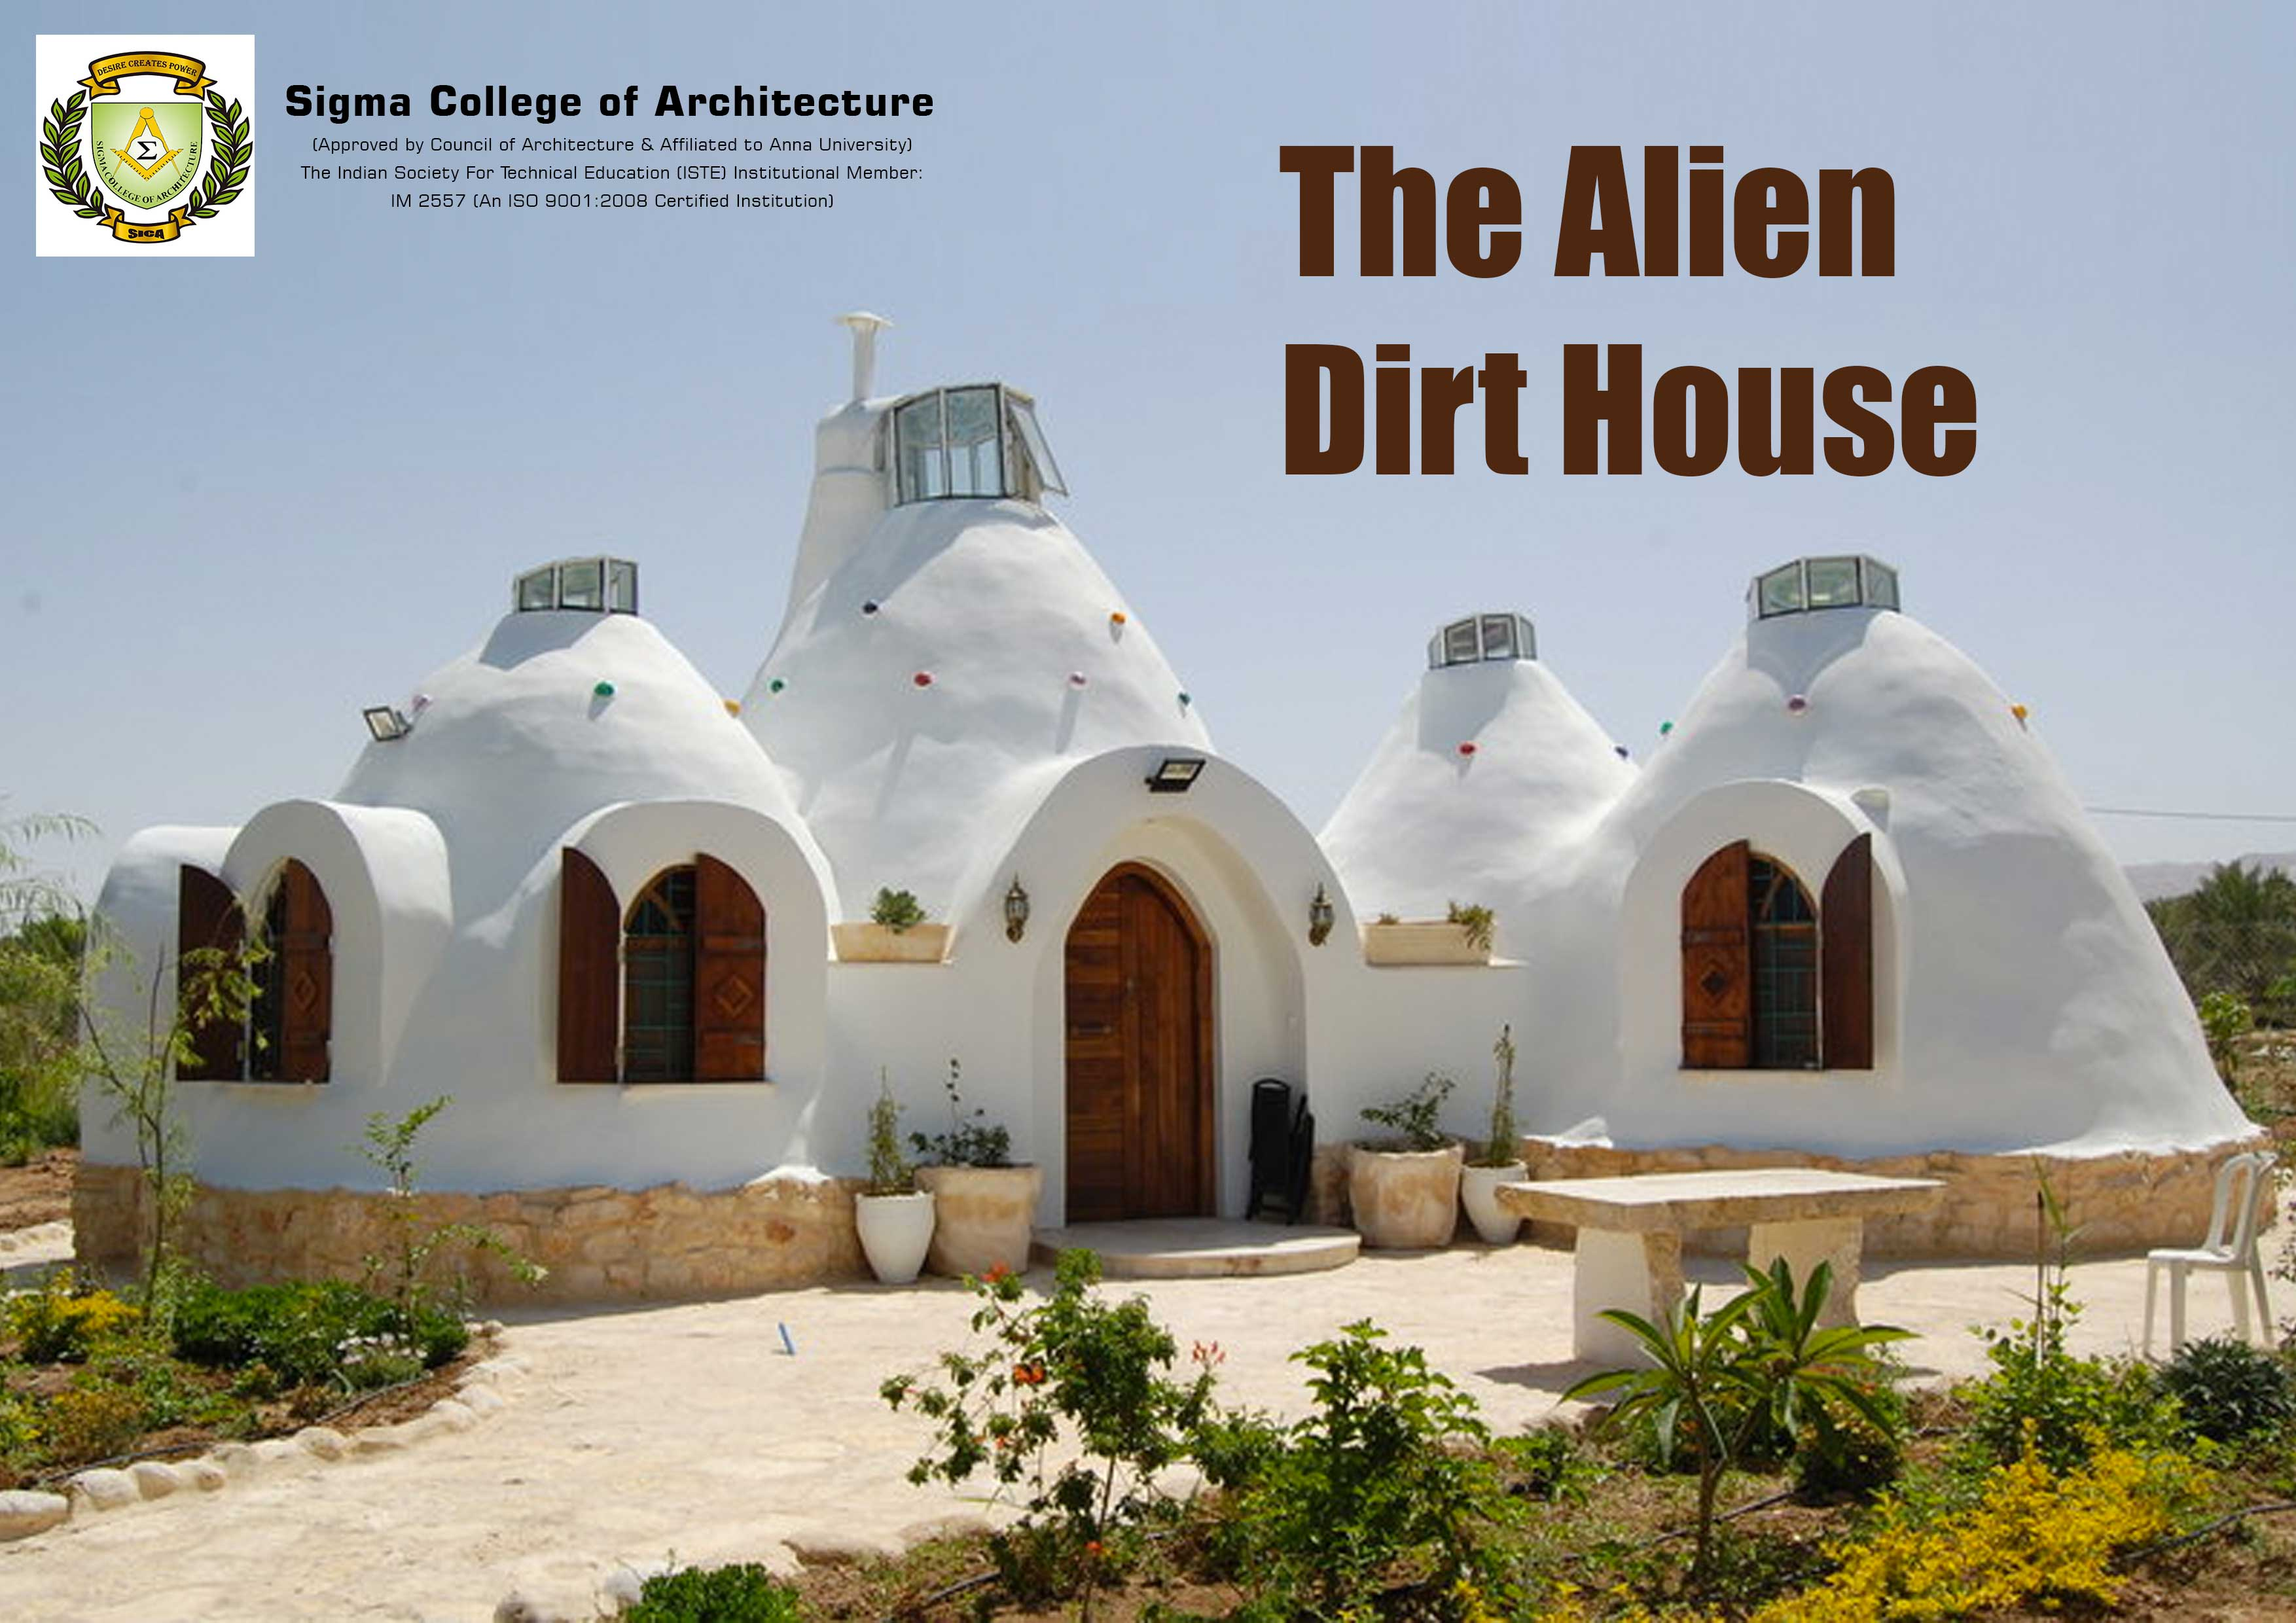 The Alien Dirt House